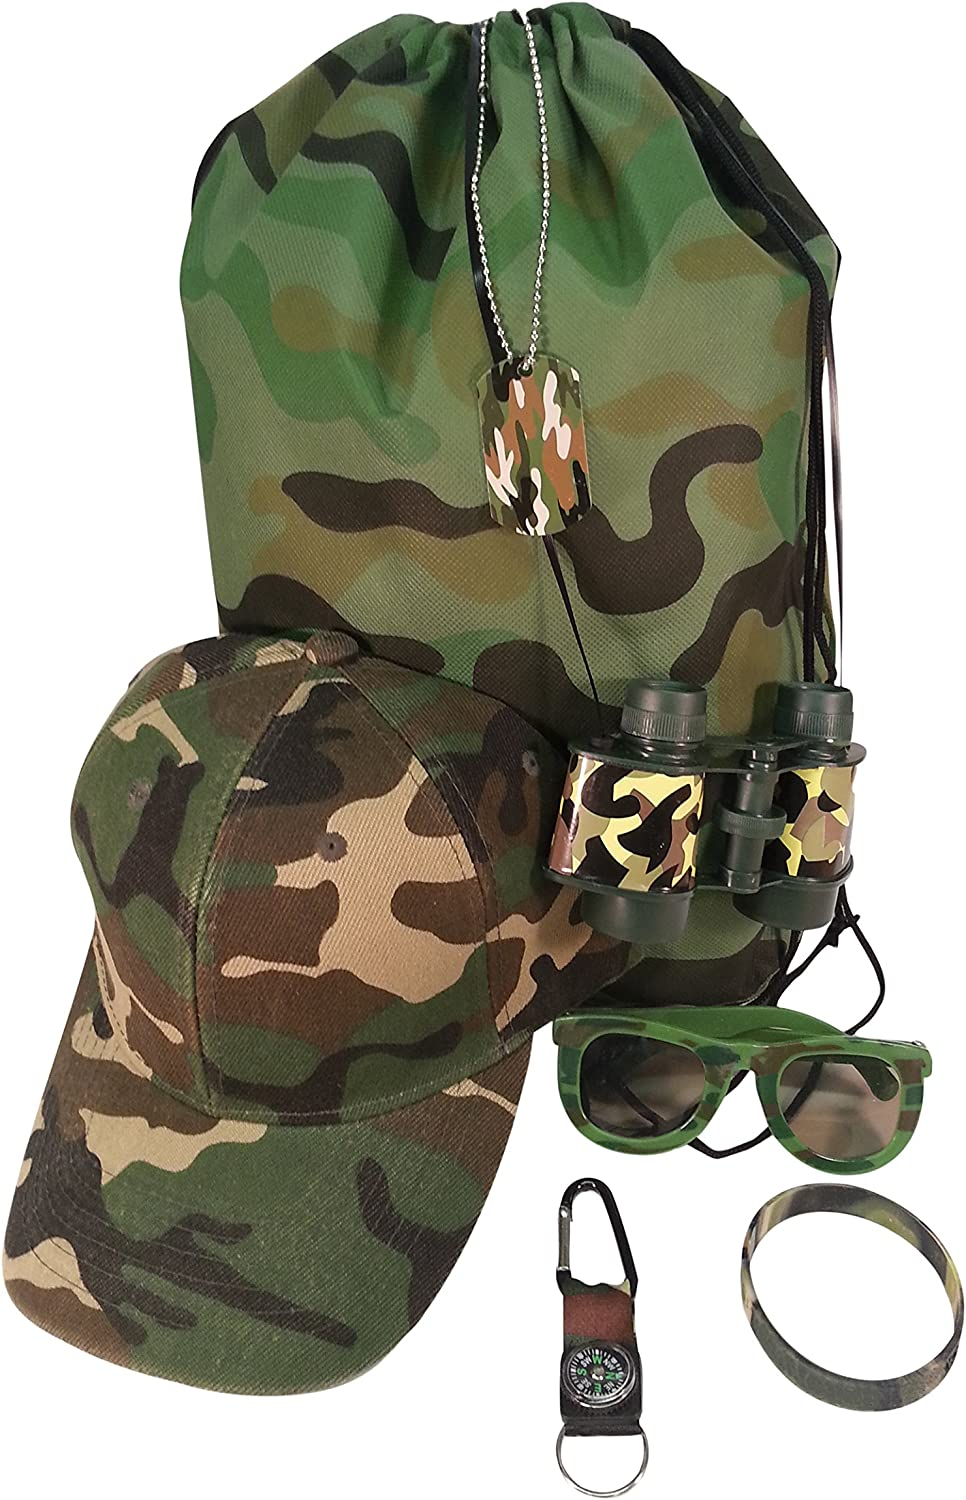 Kids Army Camouflage Multi Terrain Camo Patrol Pack Ideal Gift Little Soldiers